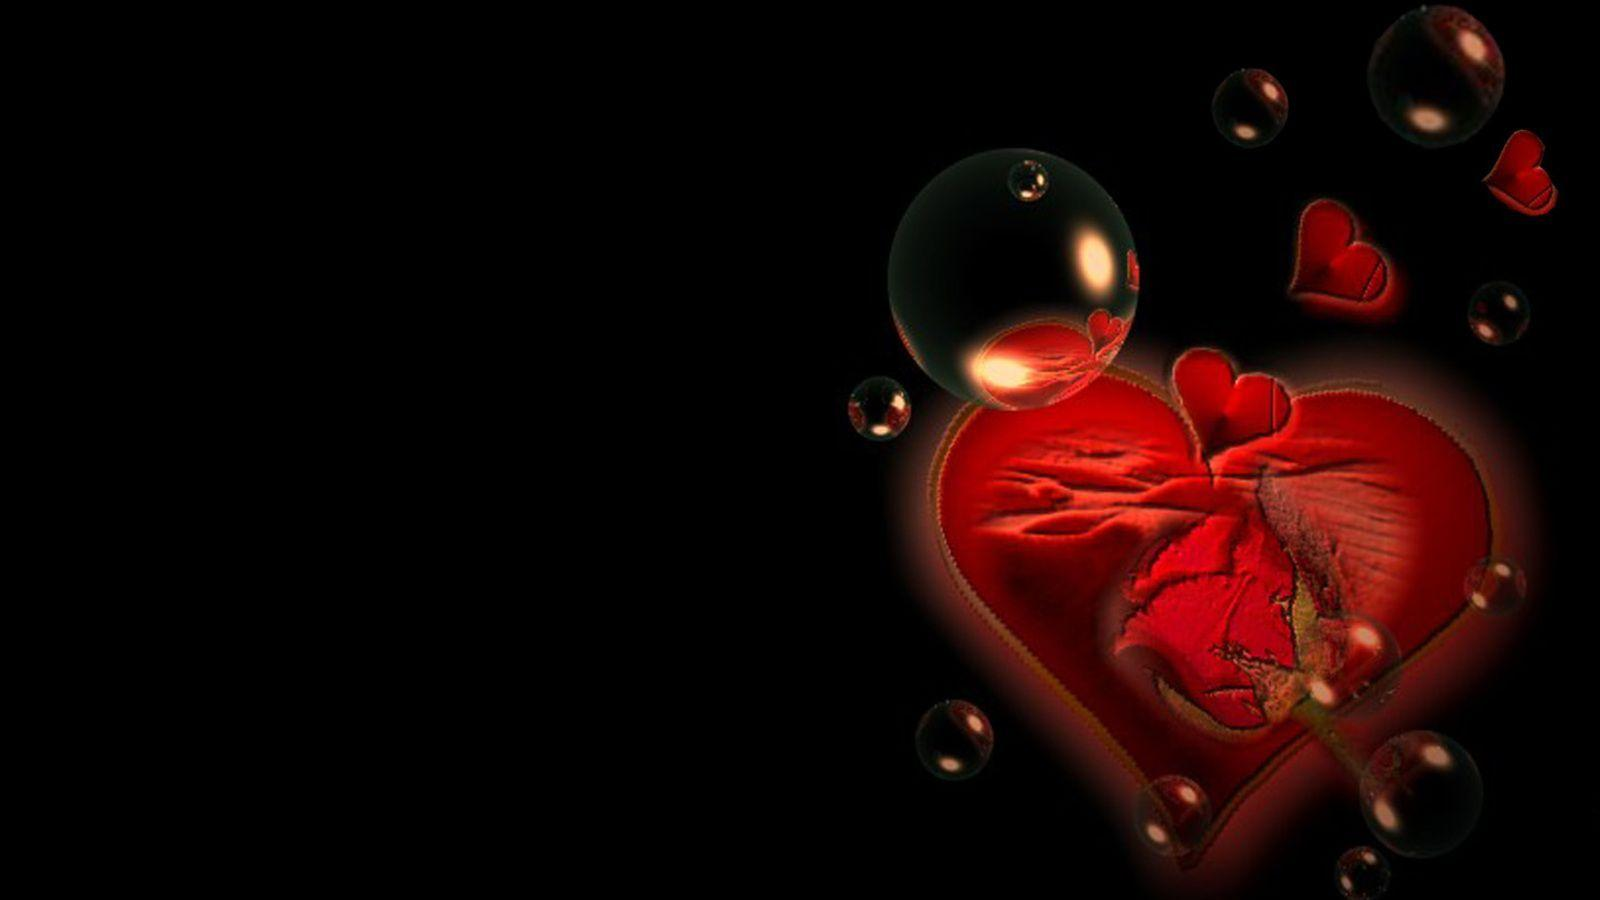 Love Wallpaper 3d Free : Love 3D Wallpapers - Wallpaper cave